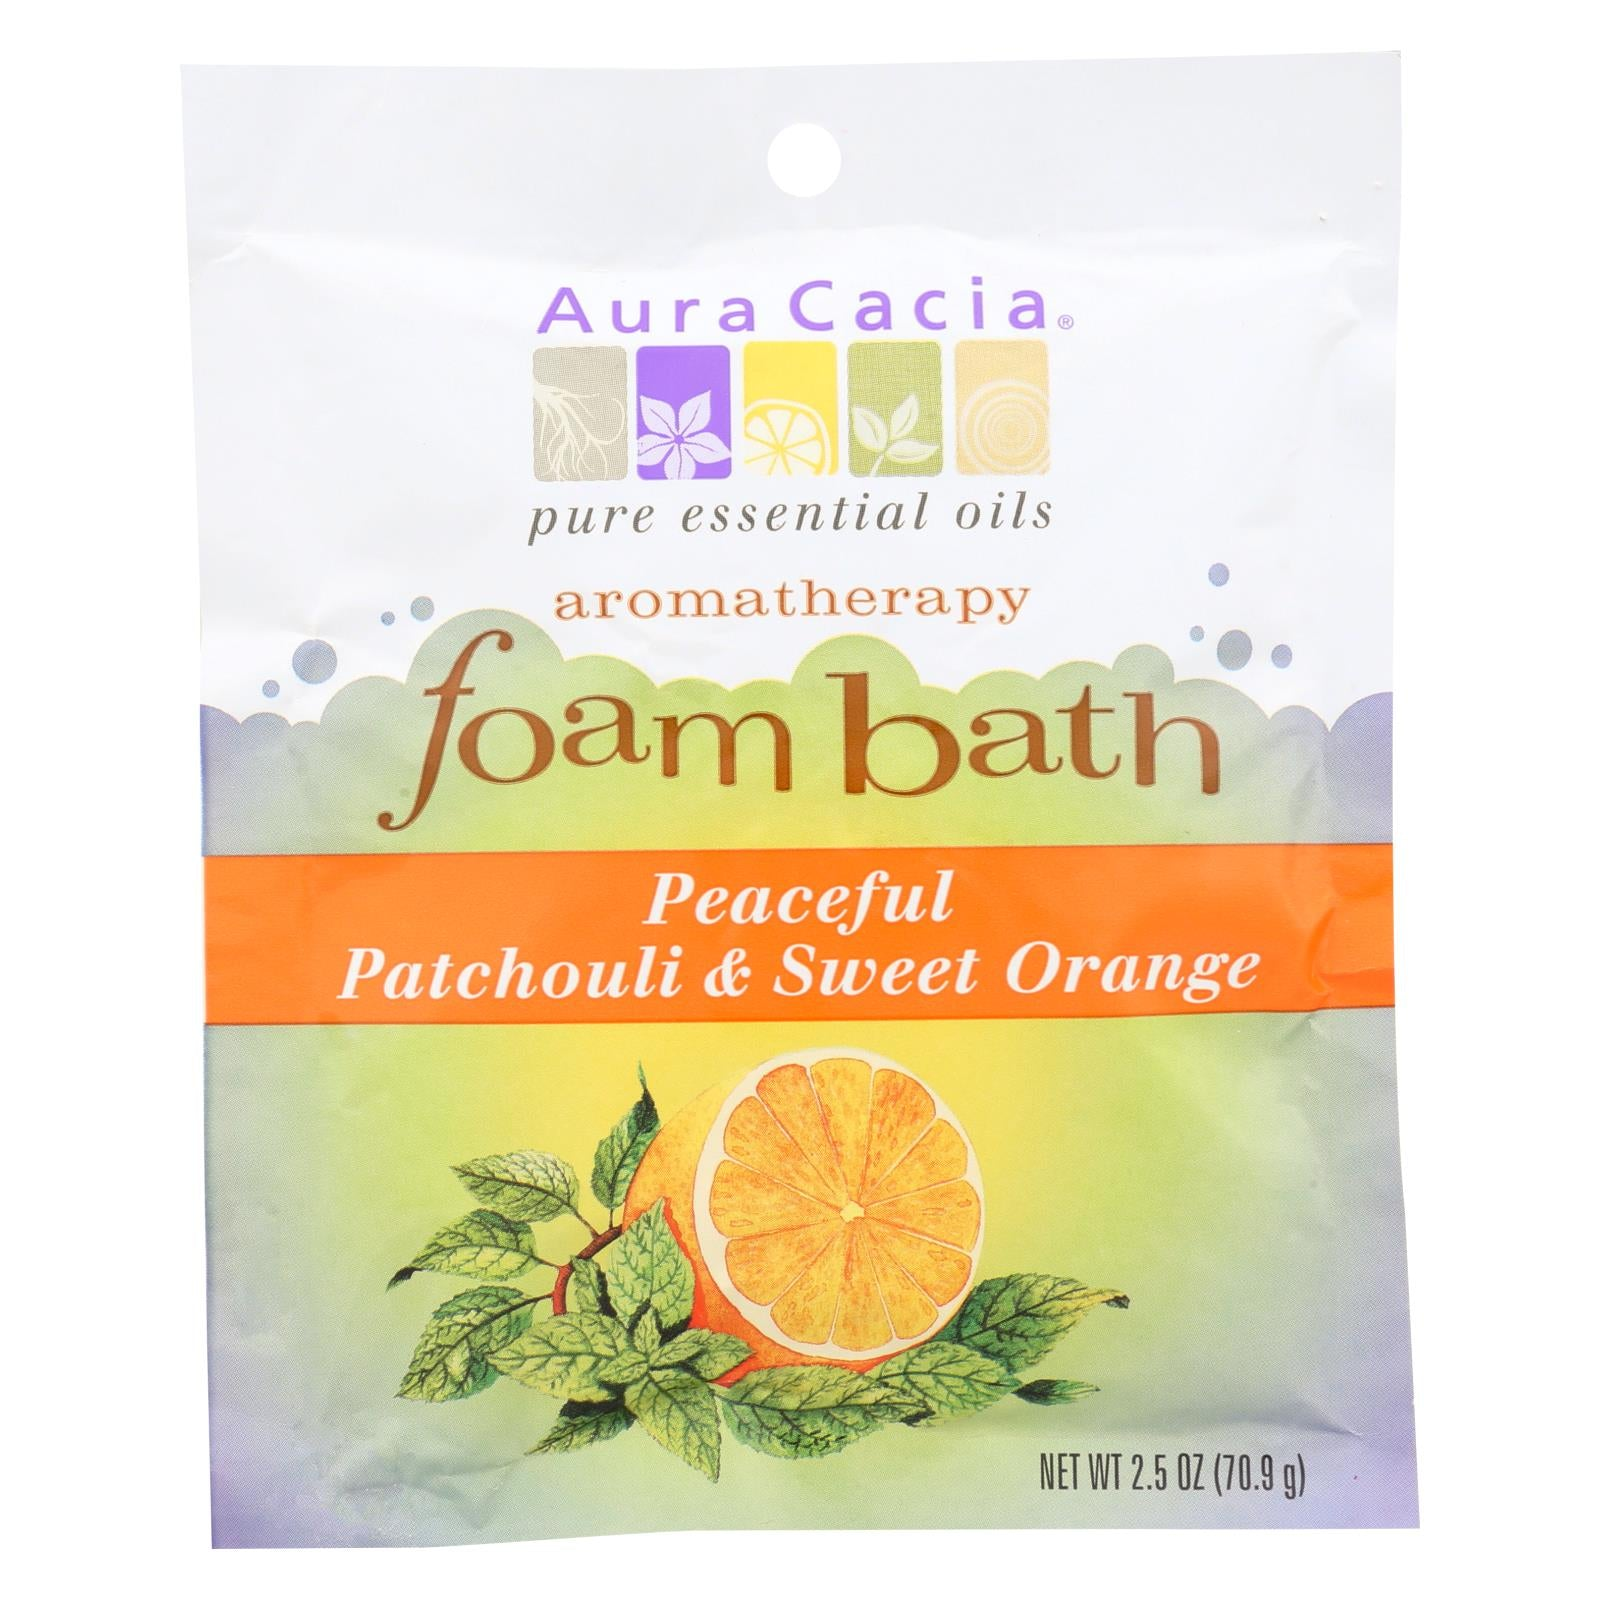 Buy Aura Cacia Foam Bath - Packet - Case of 1 - 2.5 oz. - Body Wash from Veroeco.com